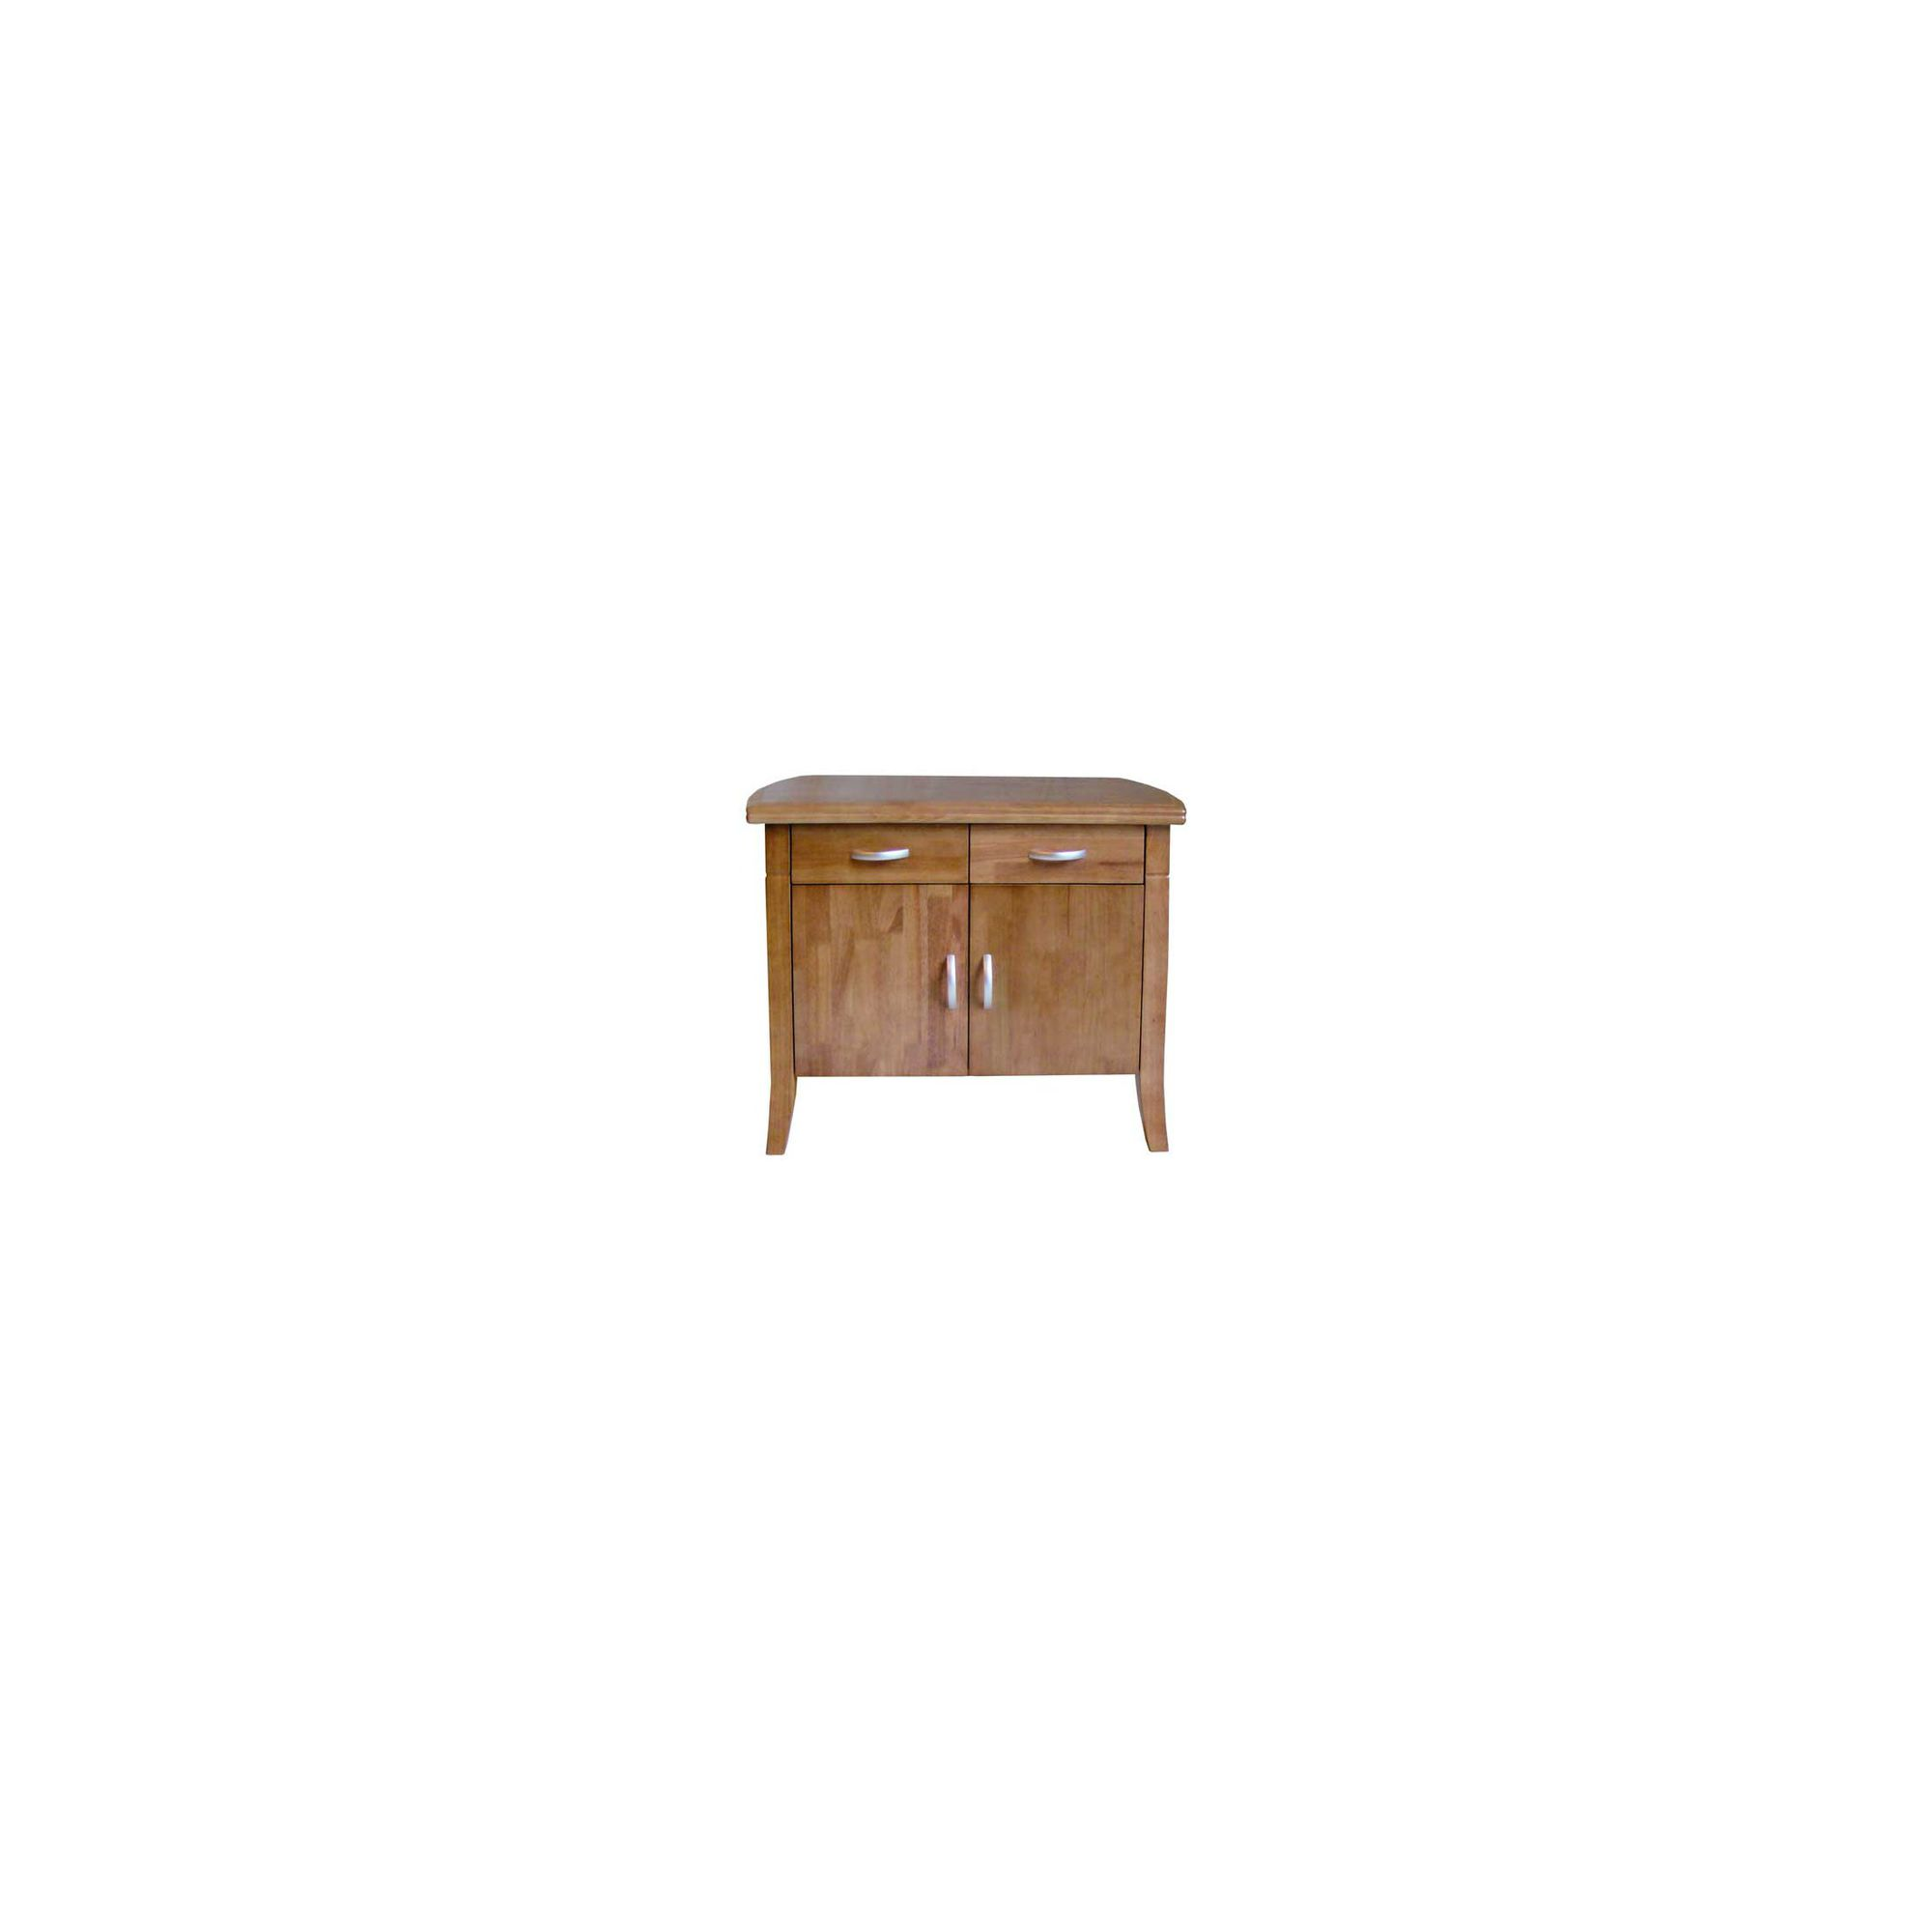 Furniture Link Seville Sideboard in Natural at Tesco Direct